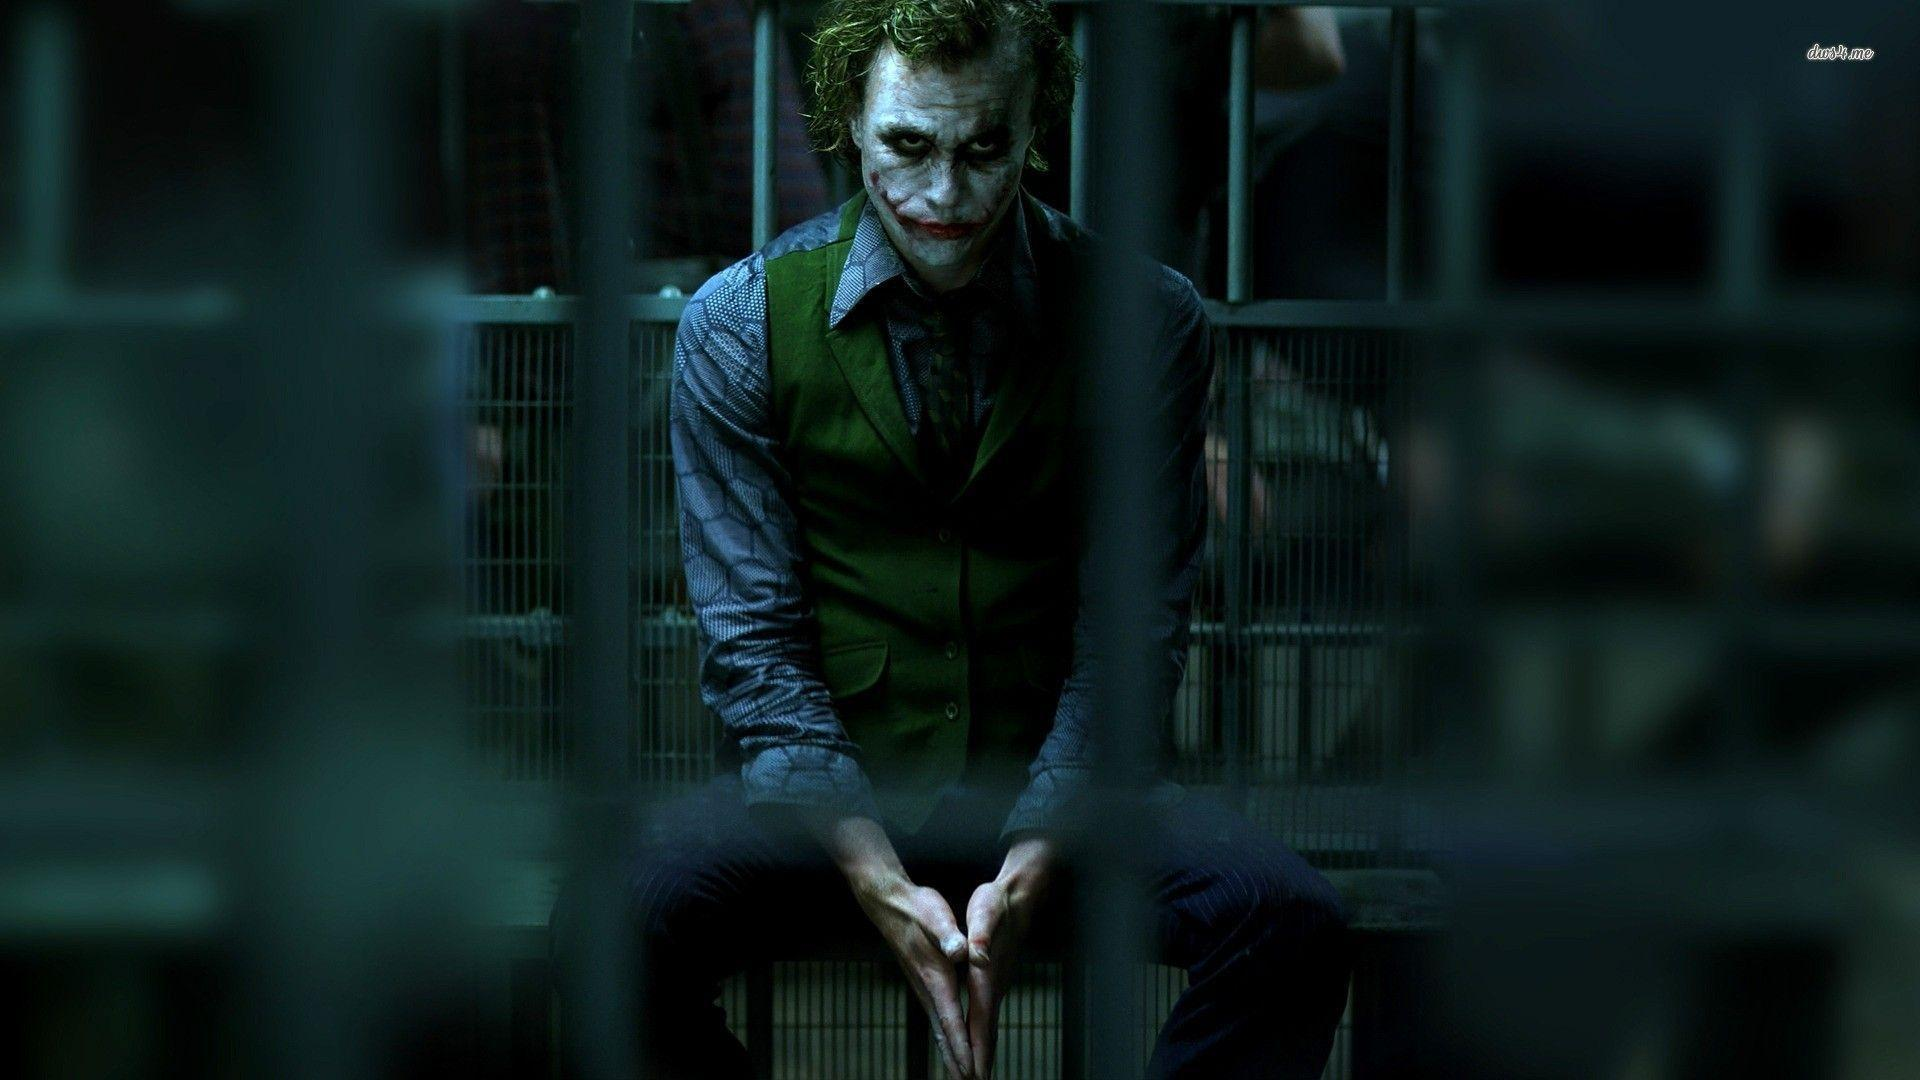 Wallpapers For > The Dark Knight Joker Face Wallpaper